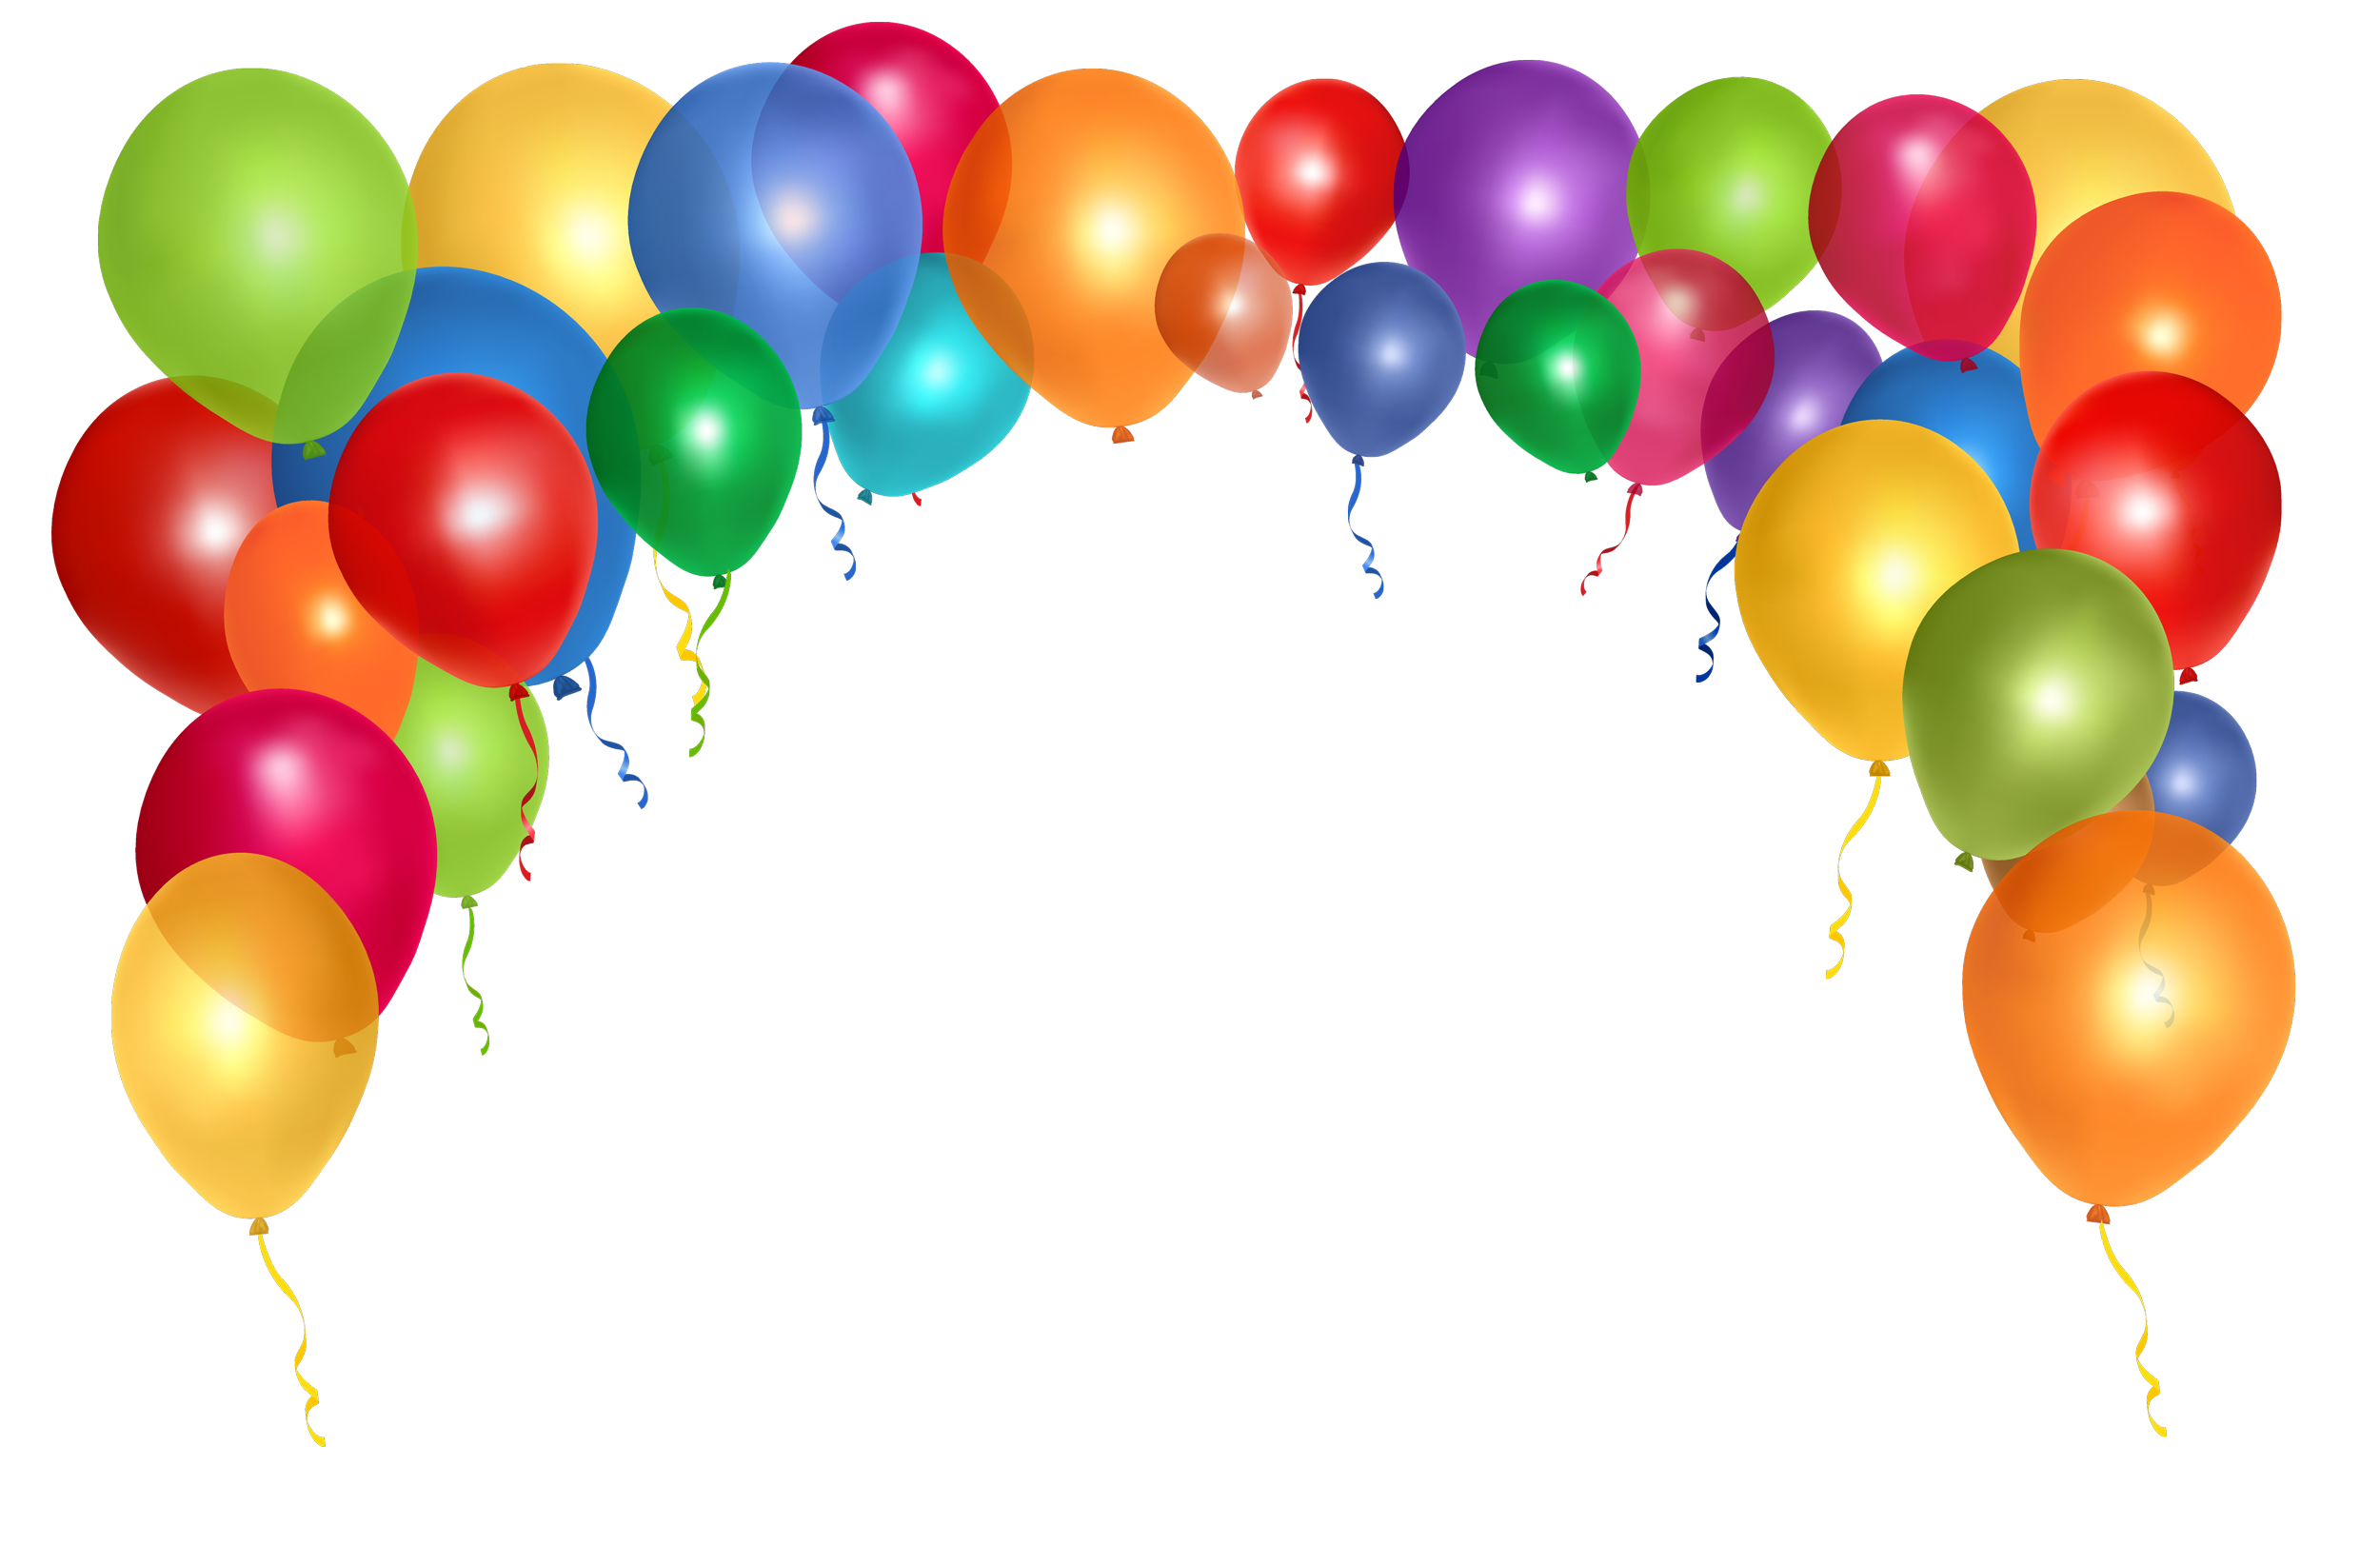 Balloons PNG Free Download - Balloon PNG